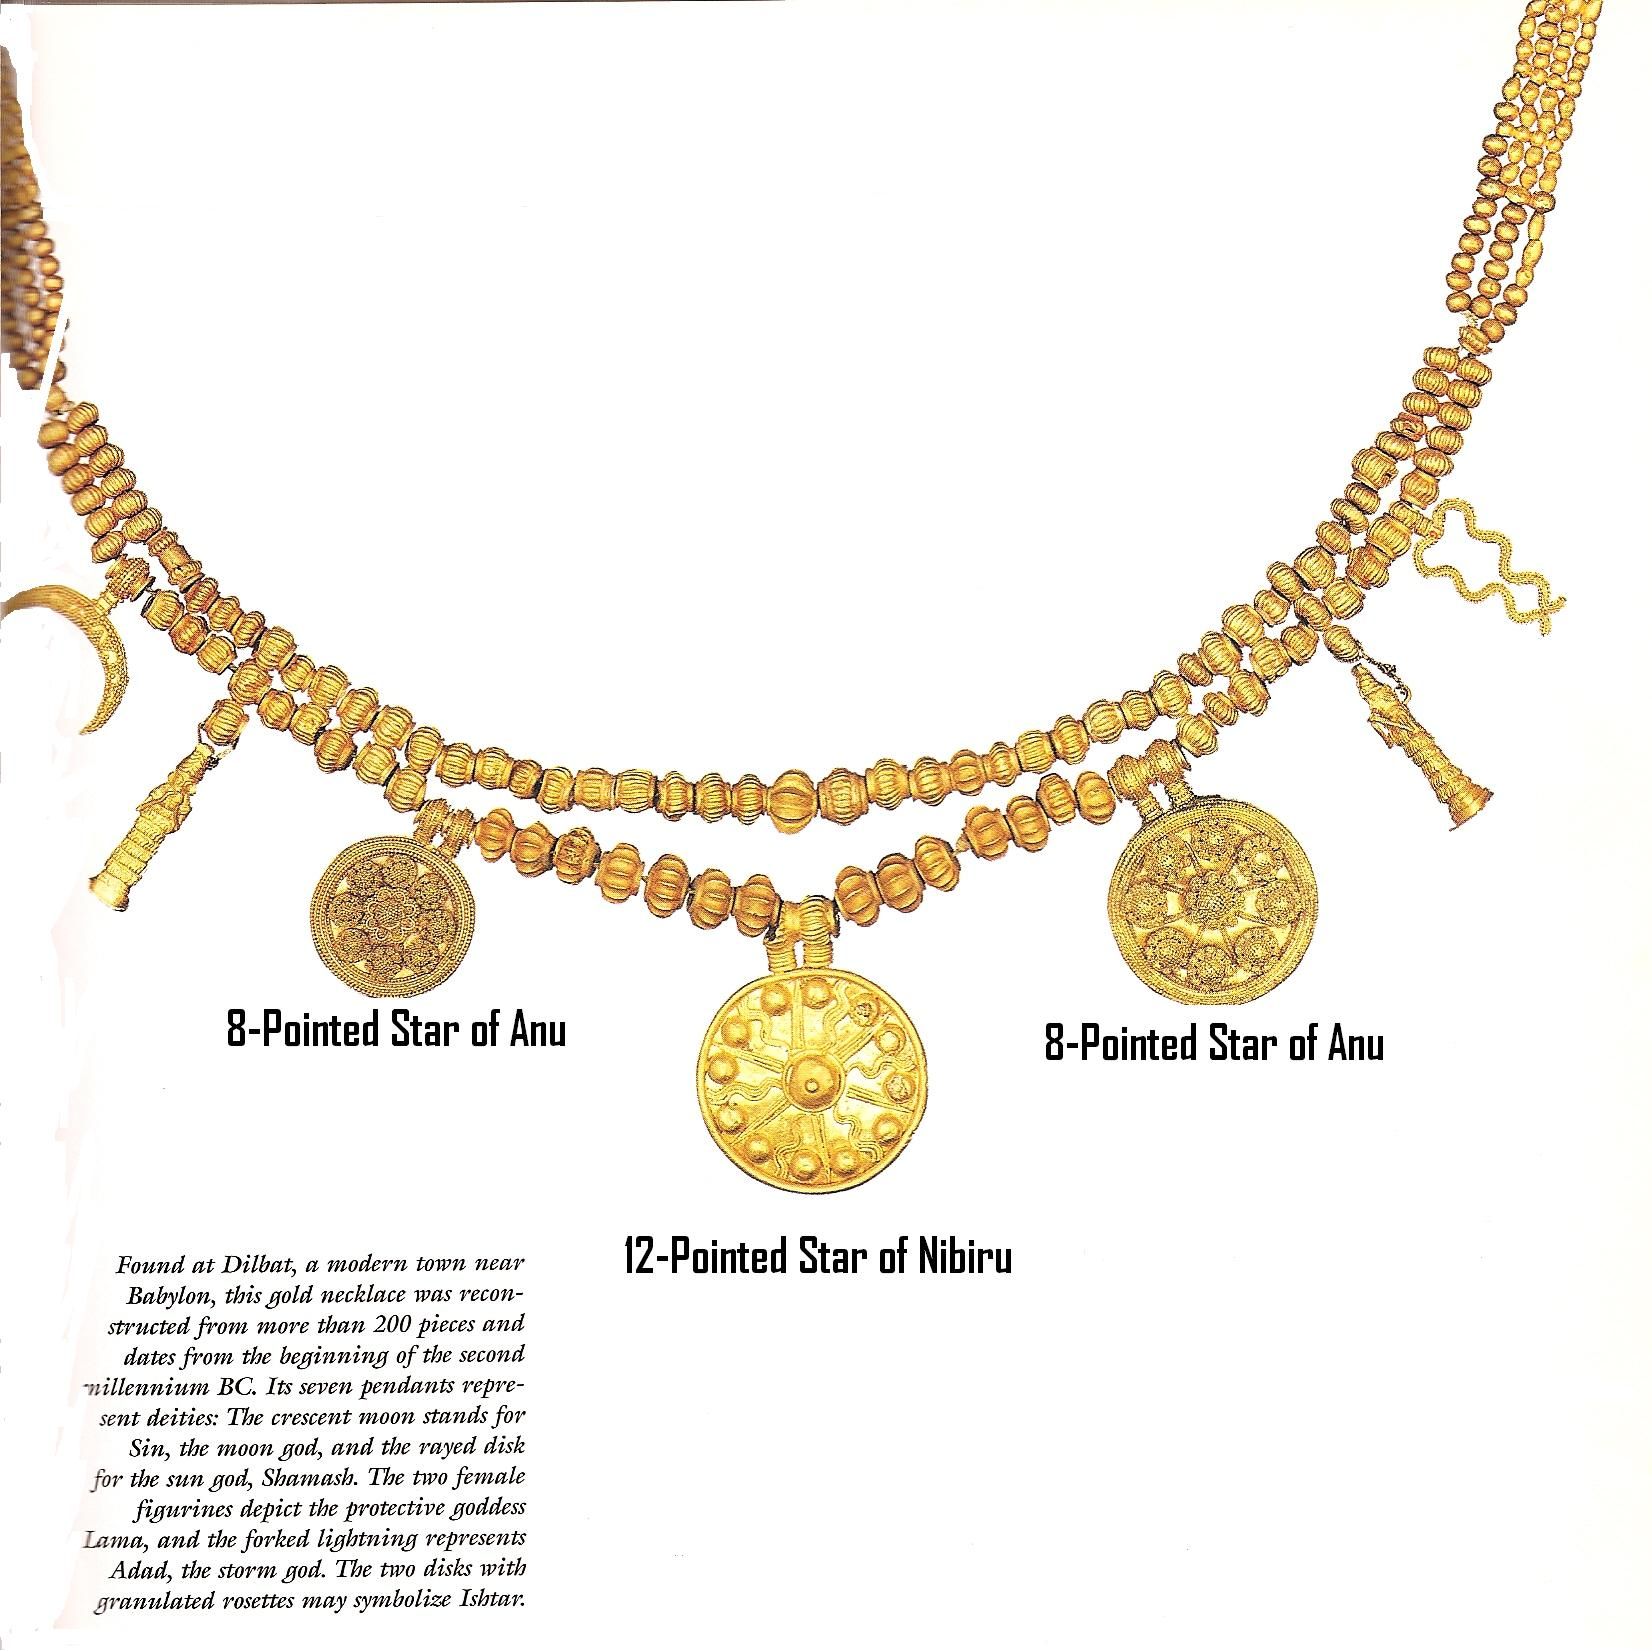 13 - 2,000 B.C. near Babylon, symbols of the gods, Nannar's moon crescent symbol, figure of Ningal, 8-pointed star of Inanna & Venus, 12-pointed star of planet Nibiru, another 8-pointed star, figure of Lama, & Ningishzidda's entwined serpent symbol, the ancients obviously made fine jewelry with a message to us about the giant alien gods who established for themselves Earth Colony, so very long ago